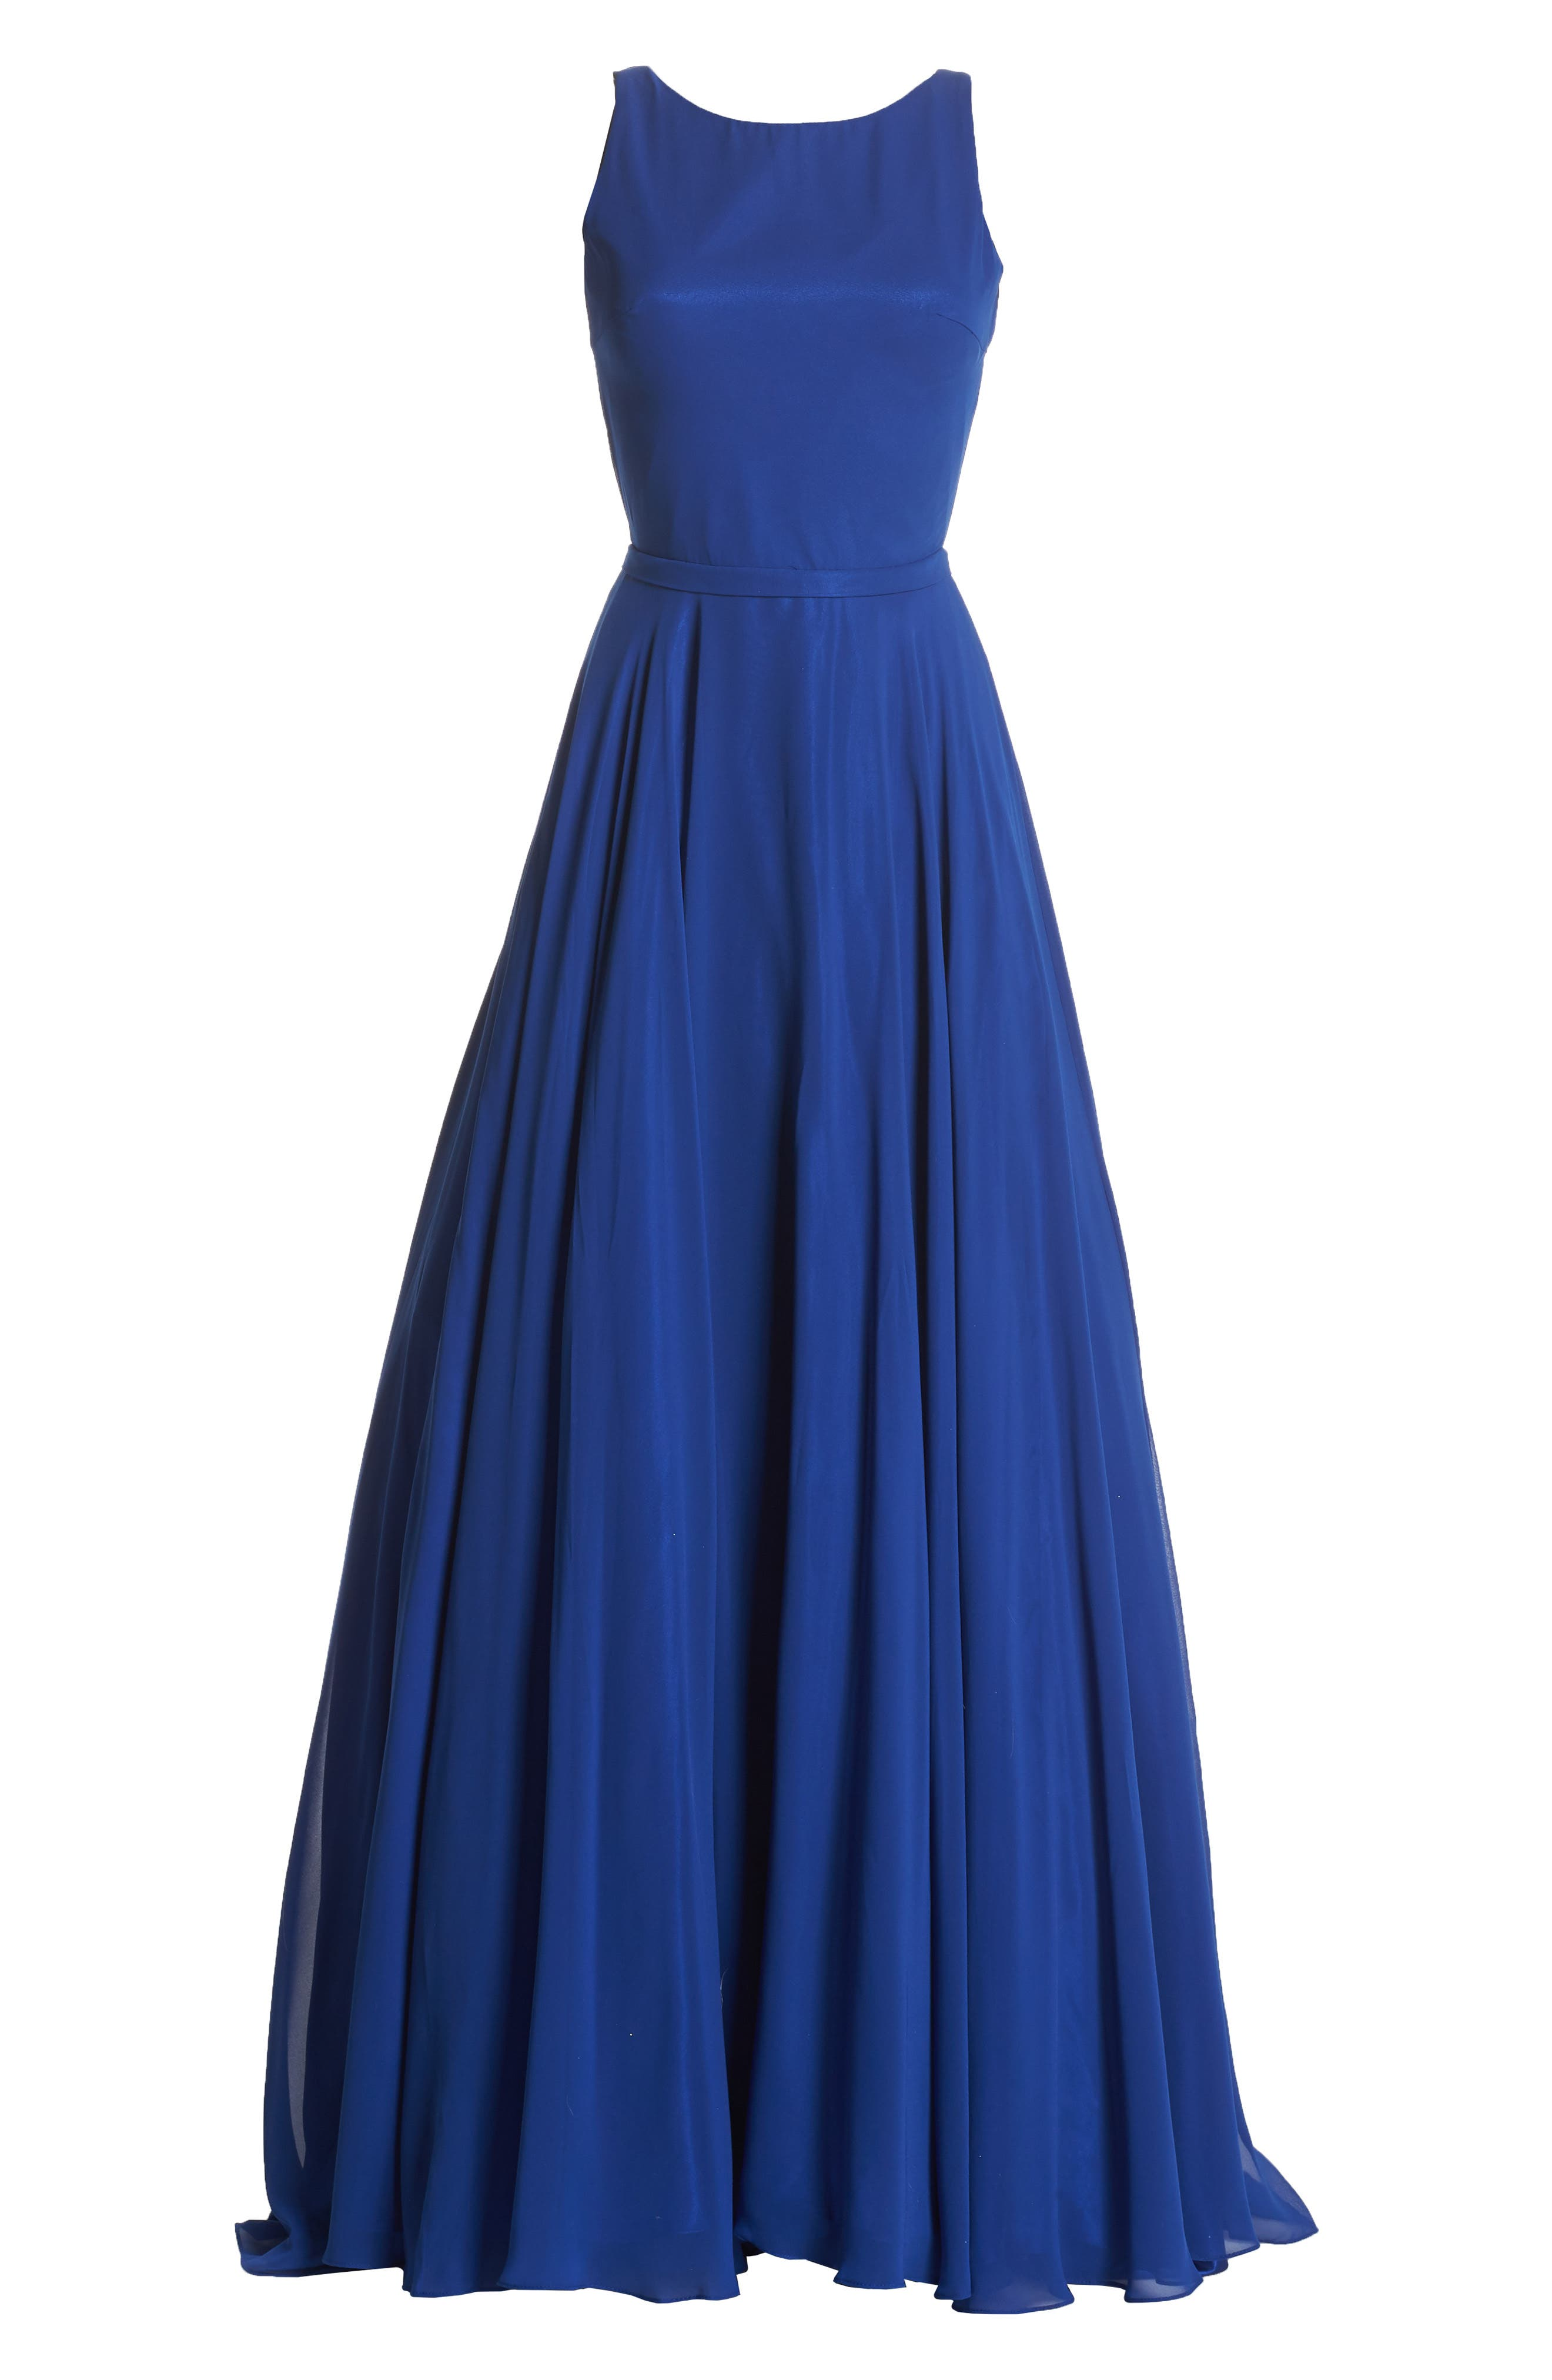 Mac Duggal Bateau Neck Ballgown,                             Alternate thumbnail 6, color,                             415